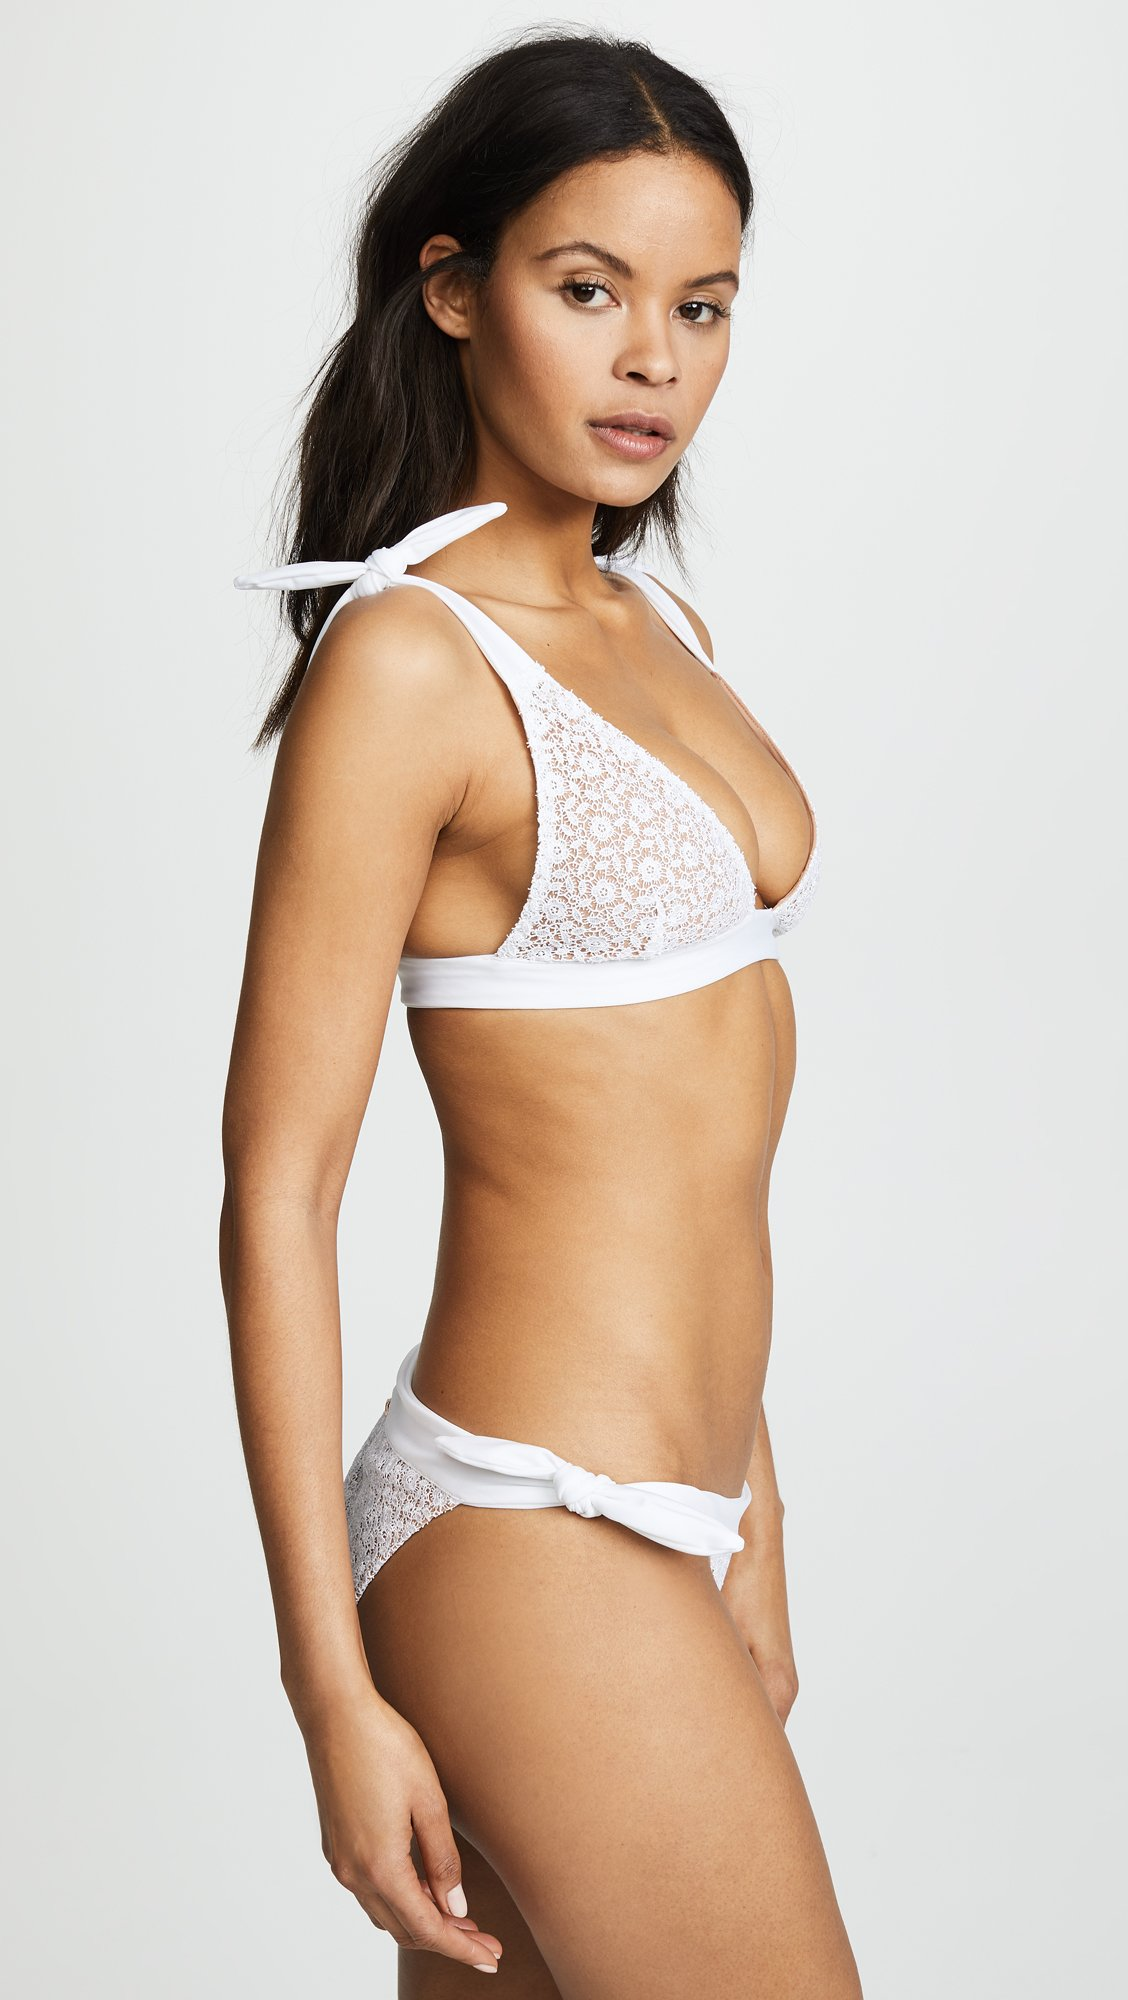 For Love & Lemons Women's Daquiri Lace Bikini Top, White Lace, X-Small by For Love & Lemons (Image #4)